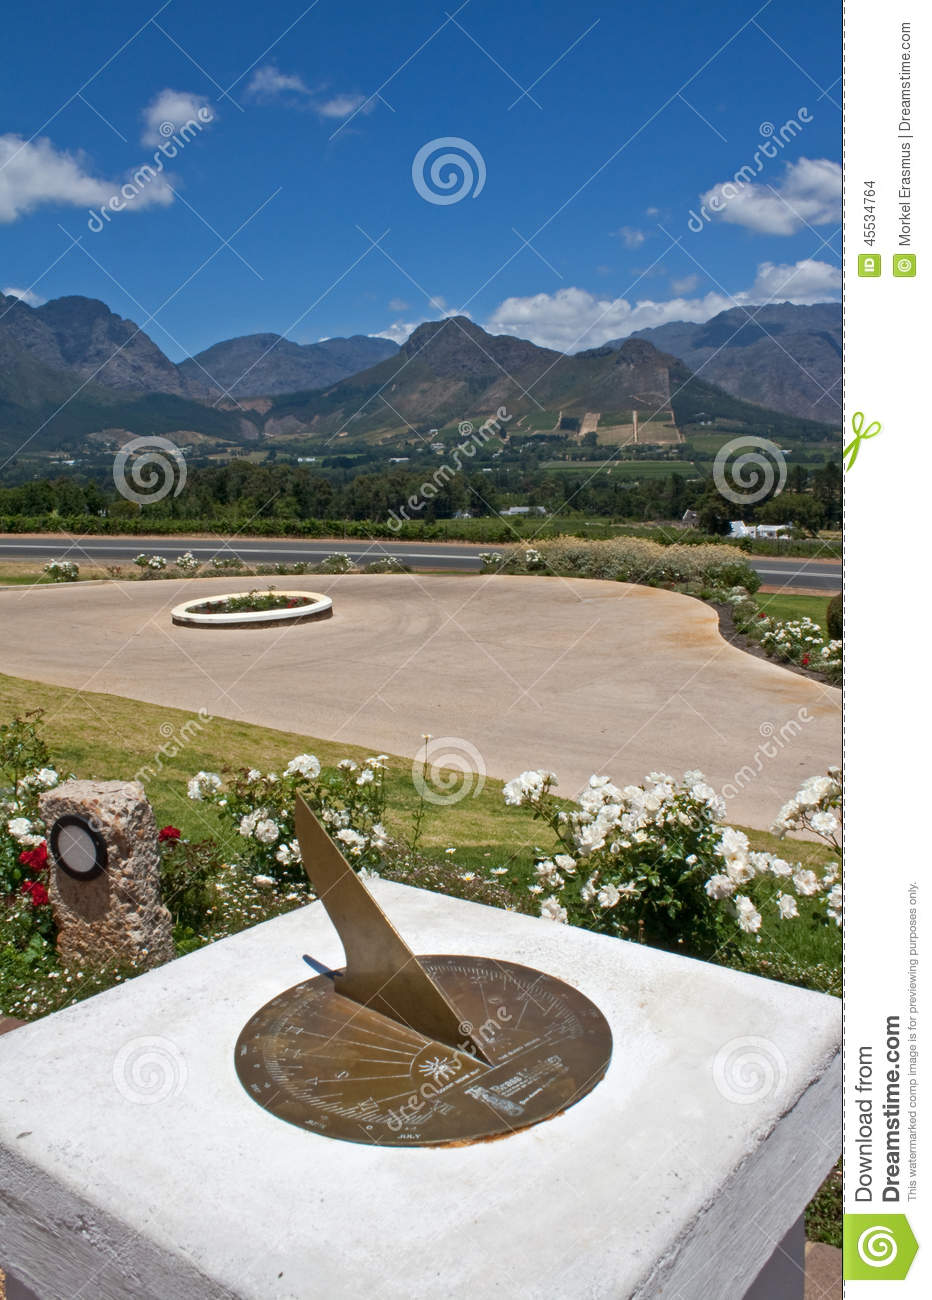 View of the Hottentots-Holland mountains and vineyards from a sundial in Franschhoek